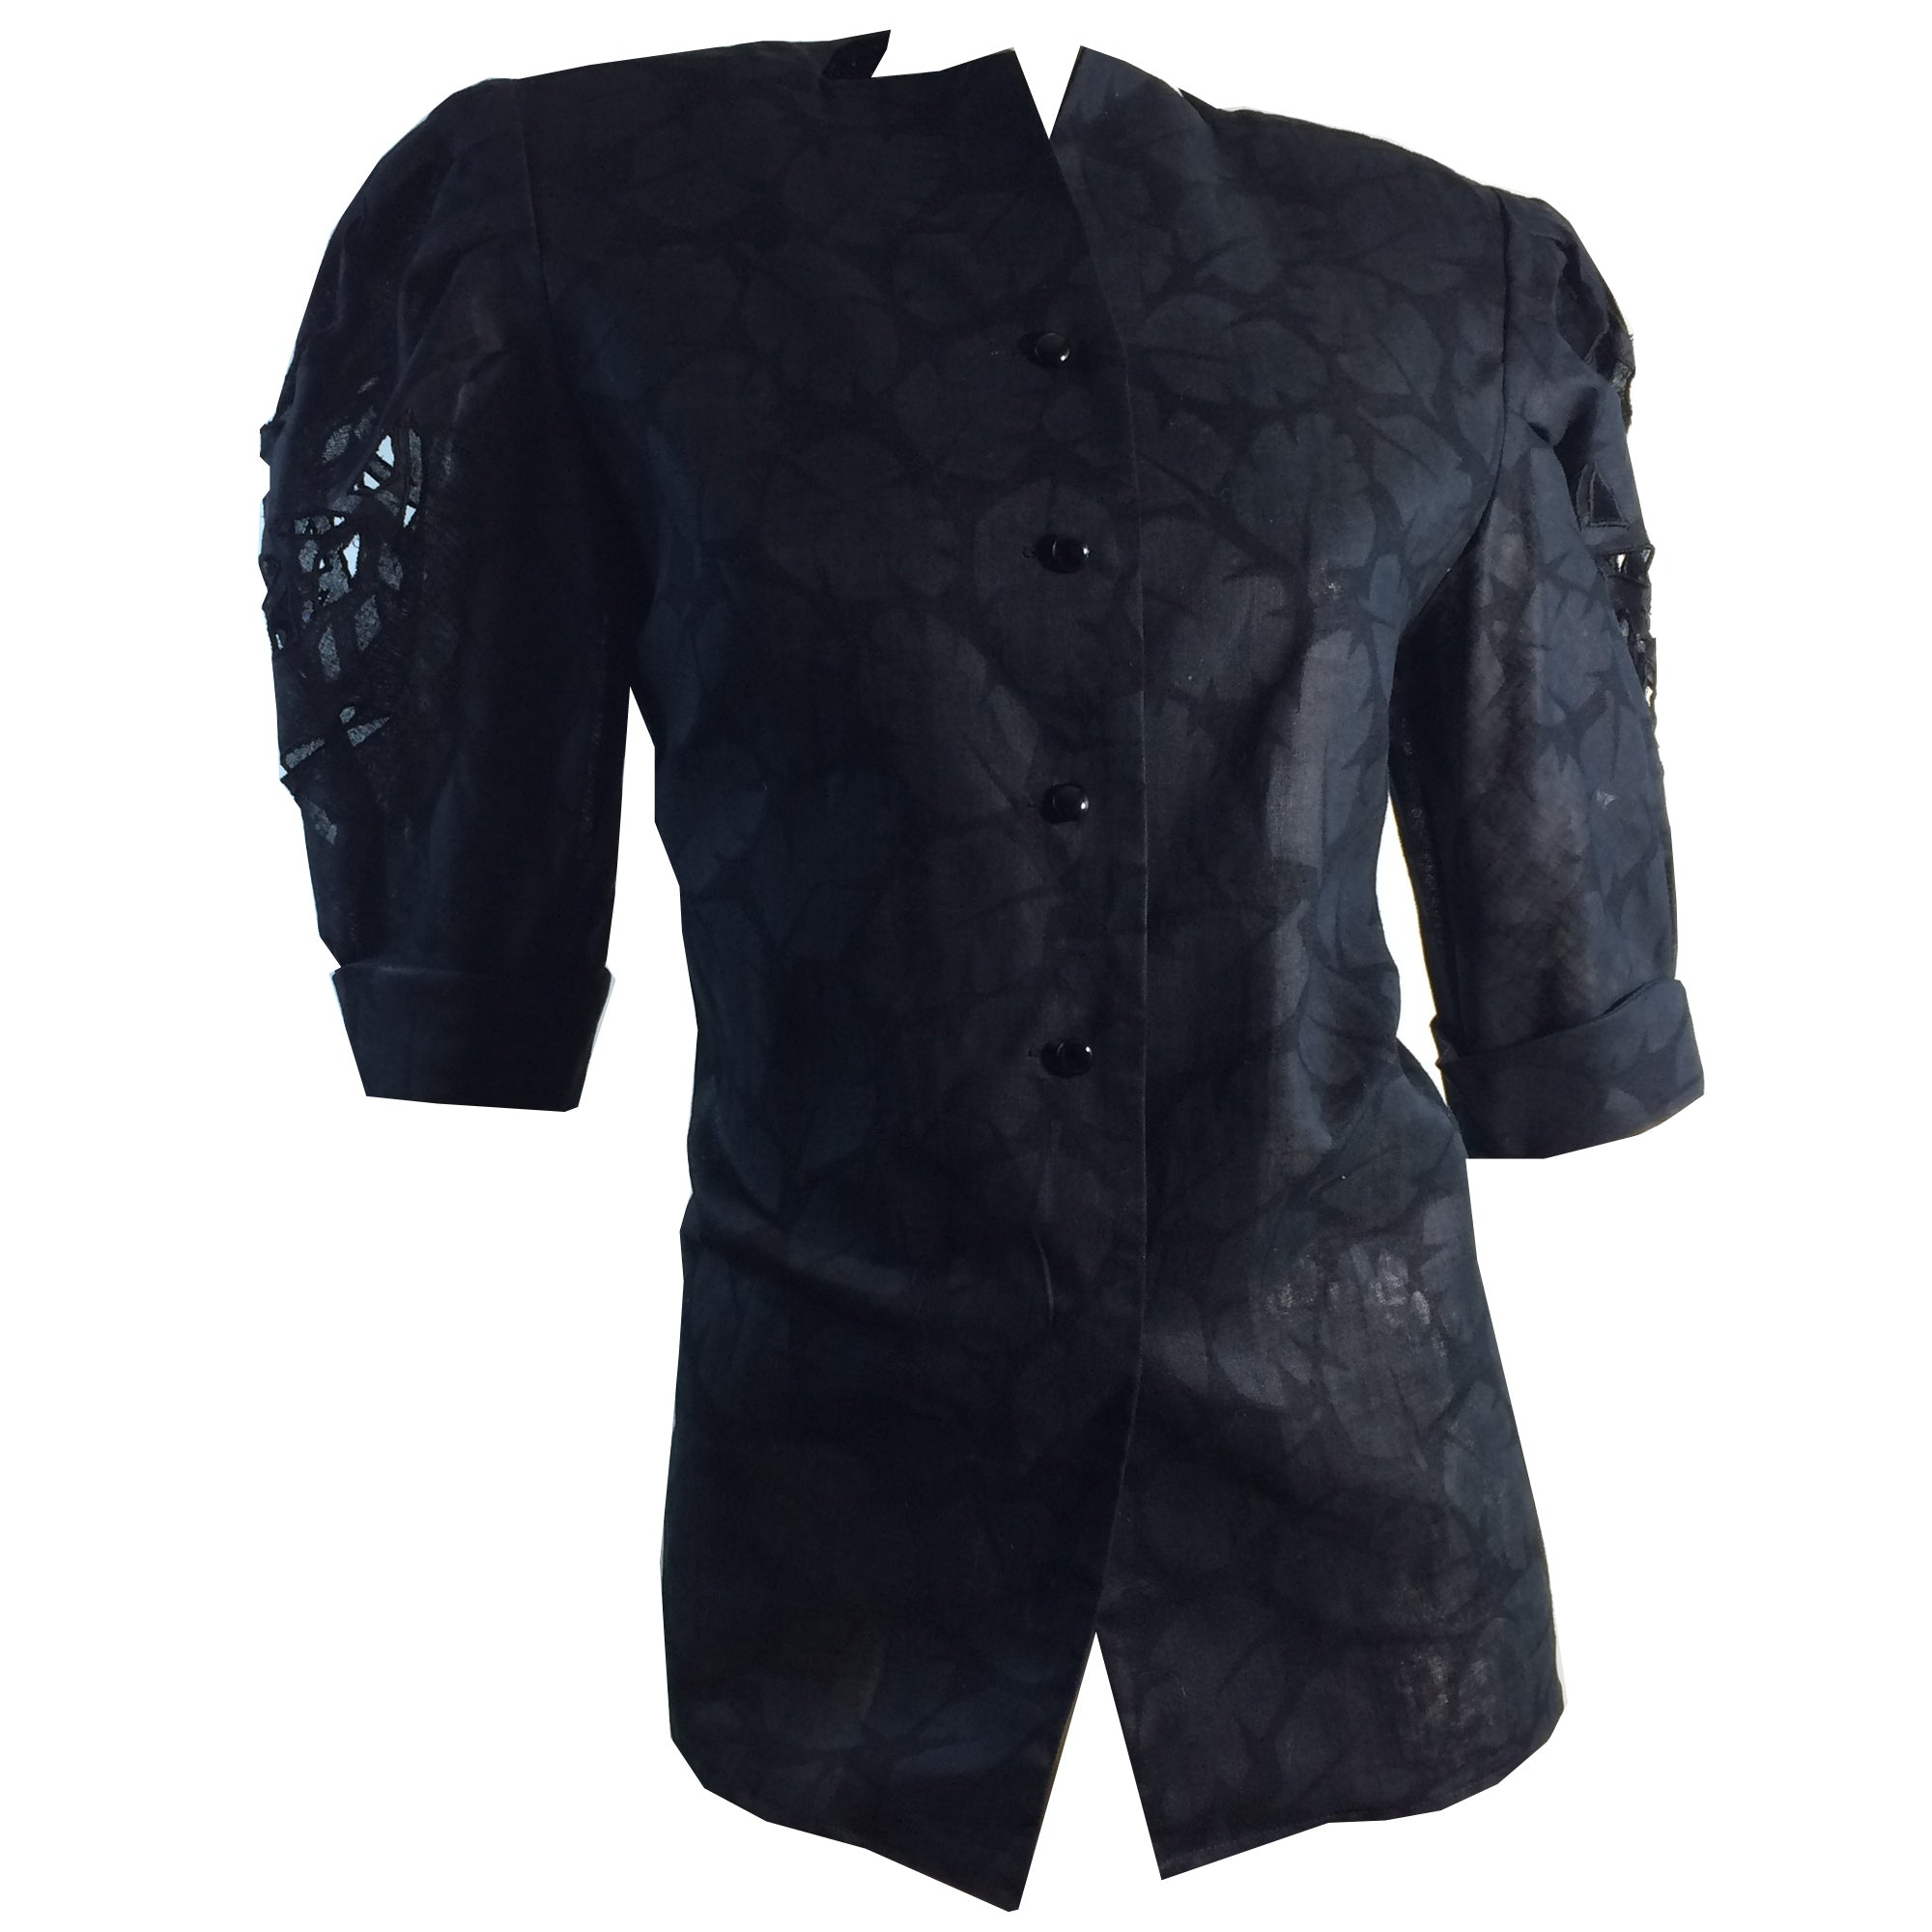 Victorian Inspired Black Linen Jacket with Cutwork Detail Full Sleeves circa 1980s